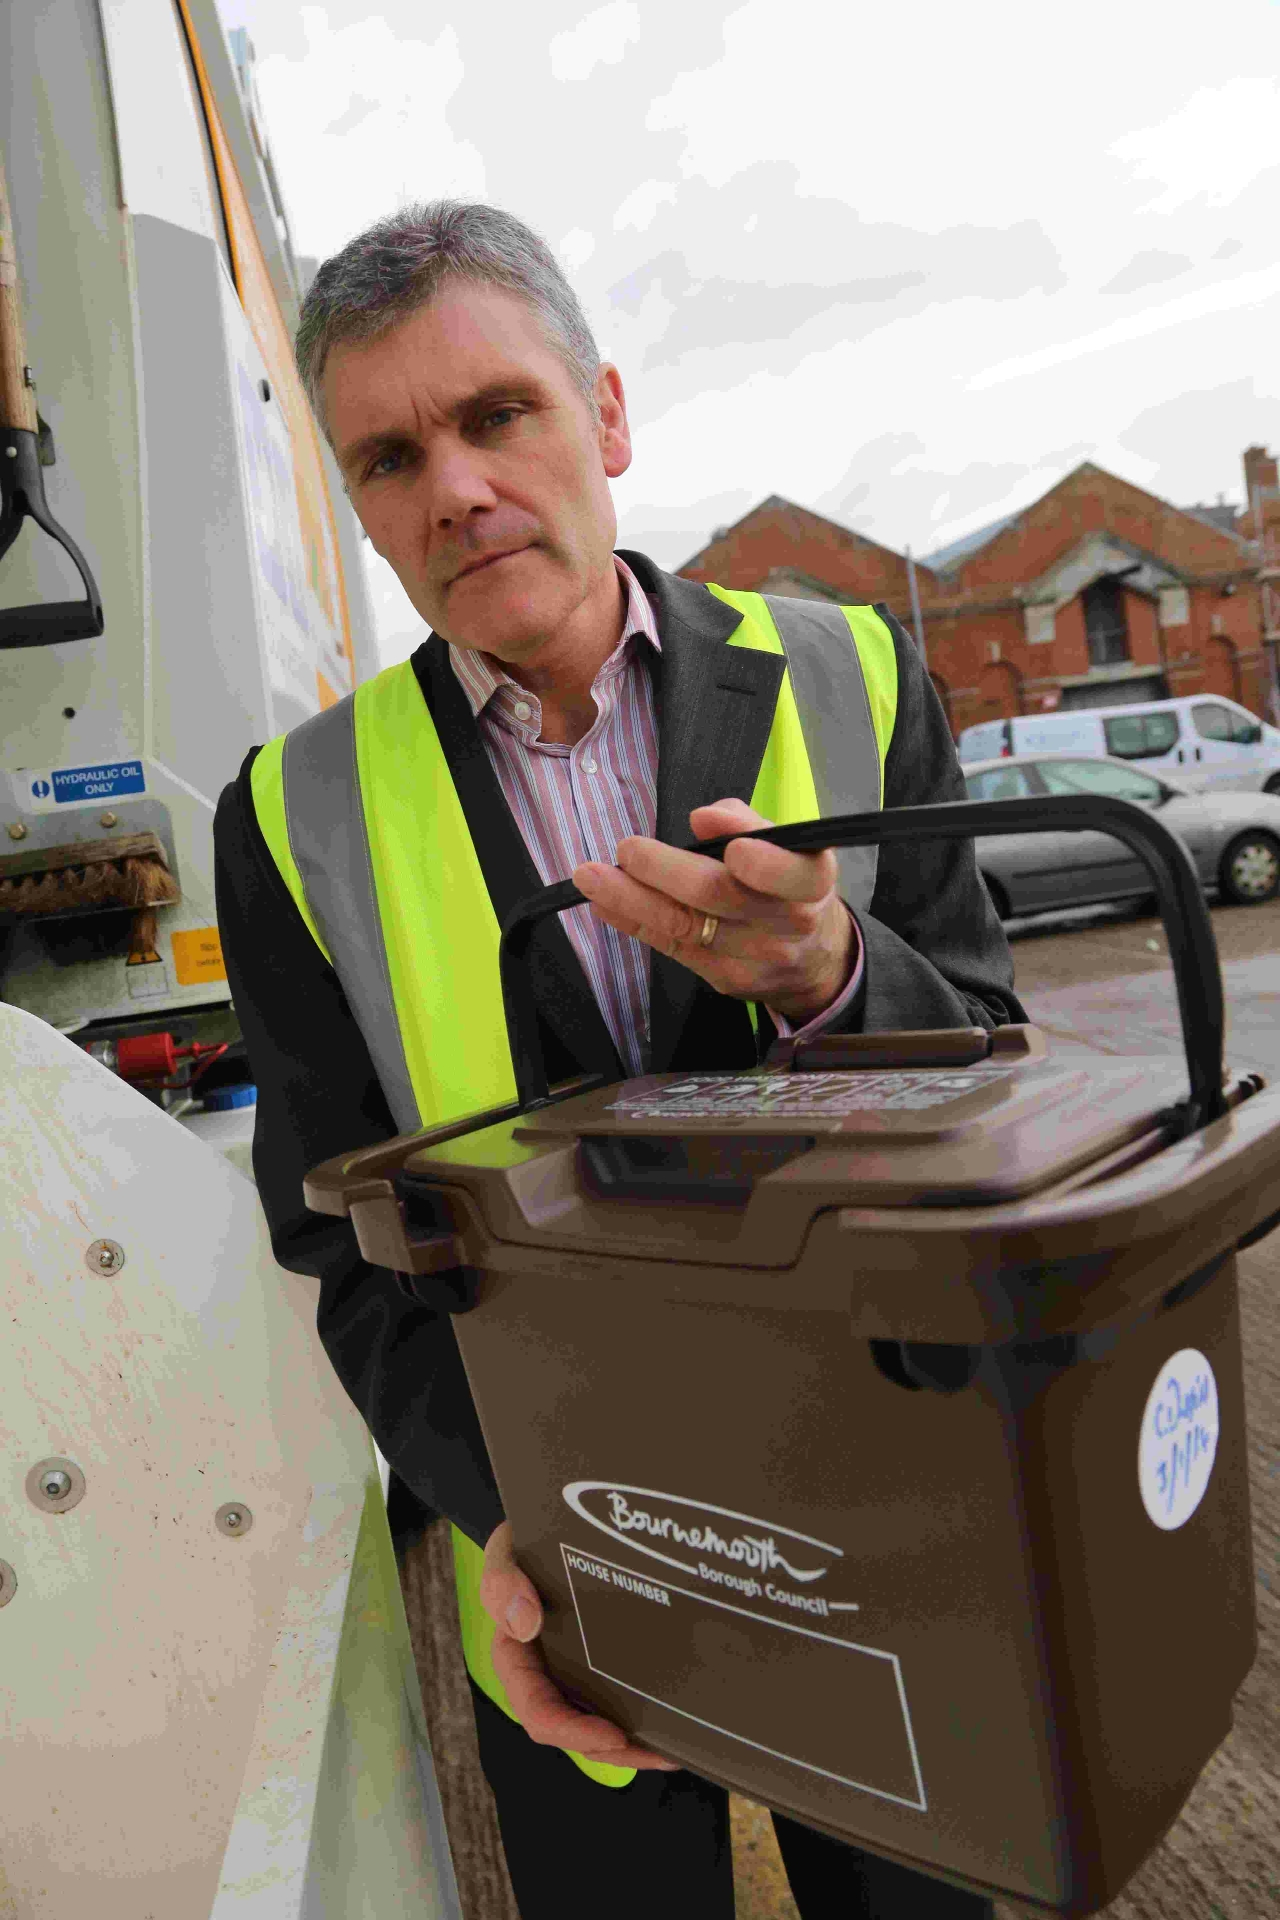 Larry Austin, strategic operations Manager at Bournemouth Council demonstrates the brown food waste bin